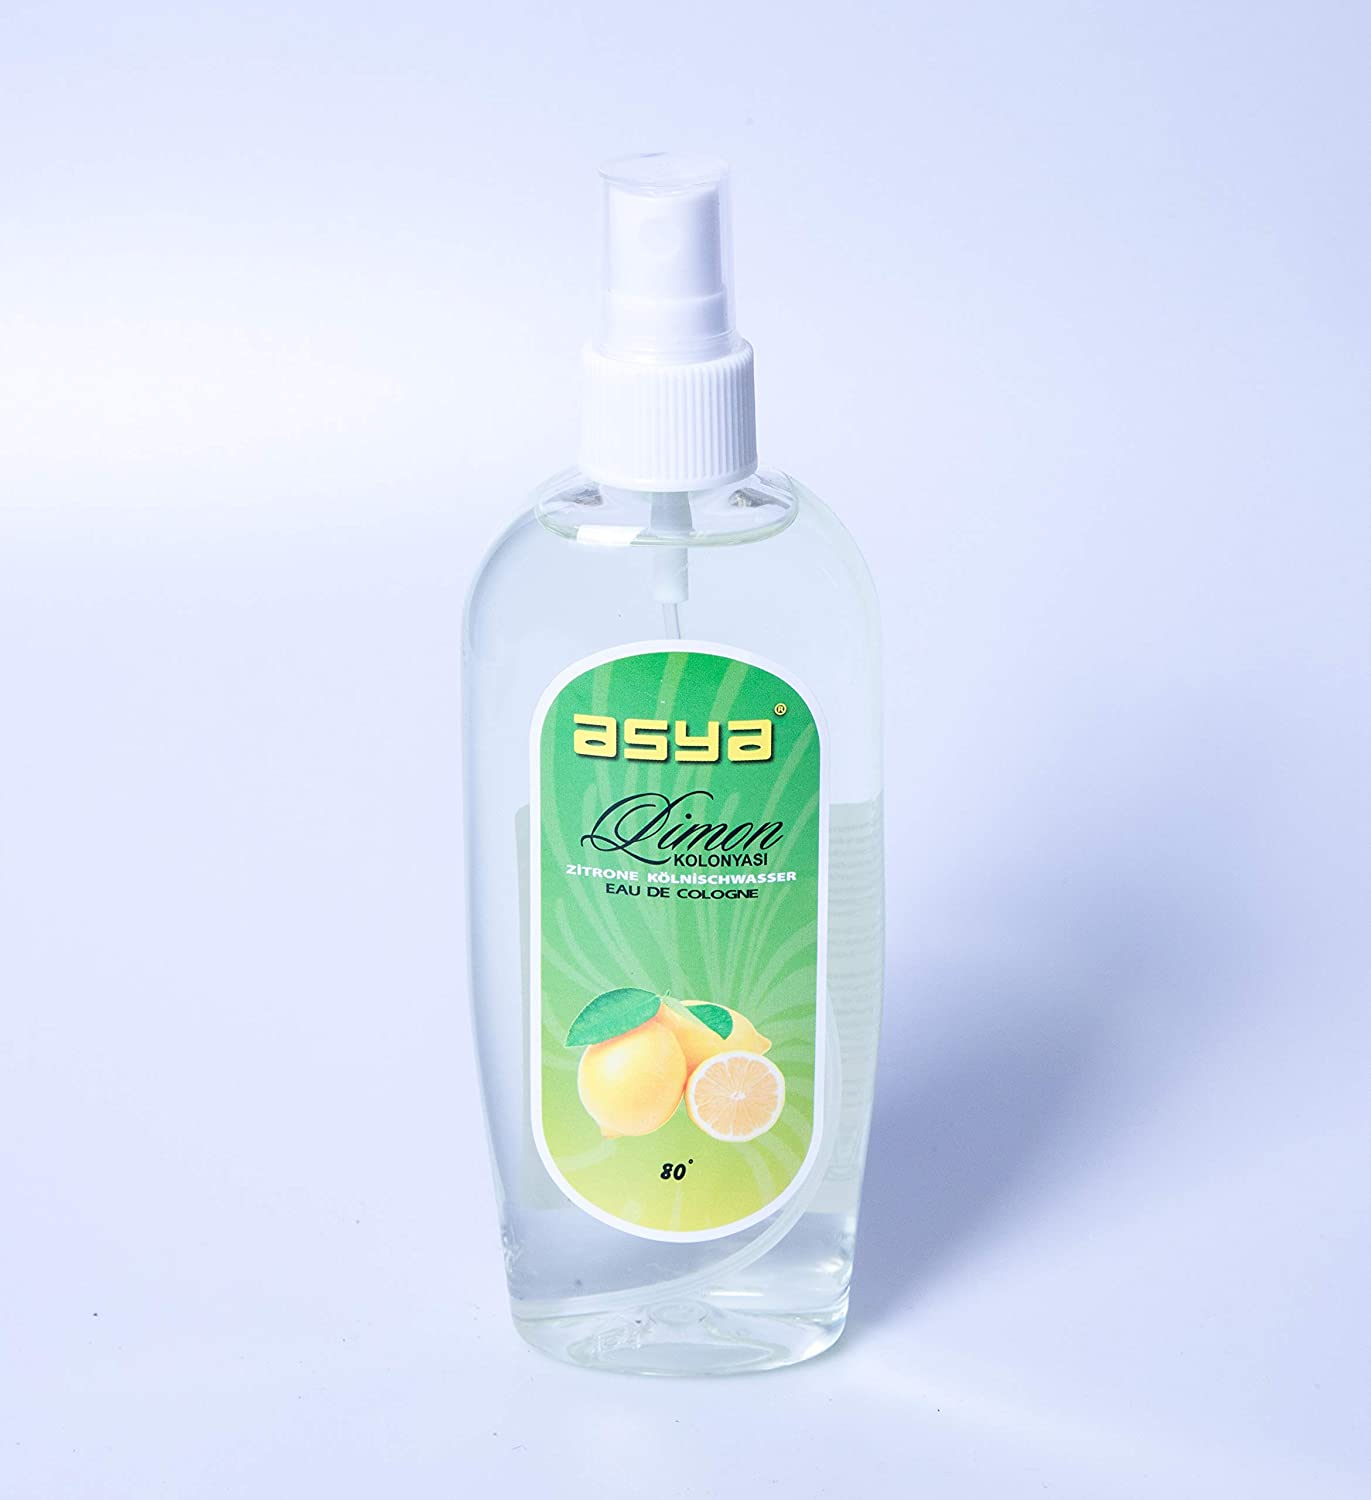 Asya Spray Cologne Lemon 165ml (Limon Kolonyasi 80°) AS-KO Kosmetik